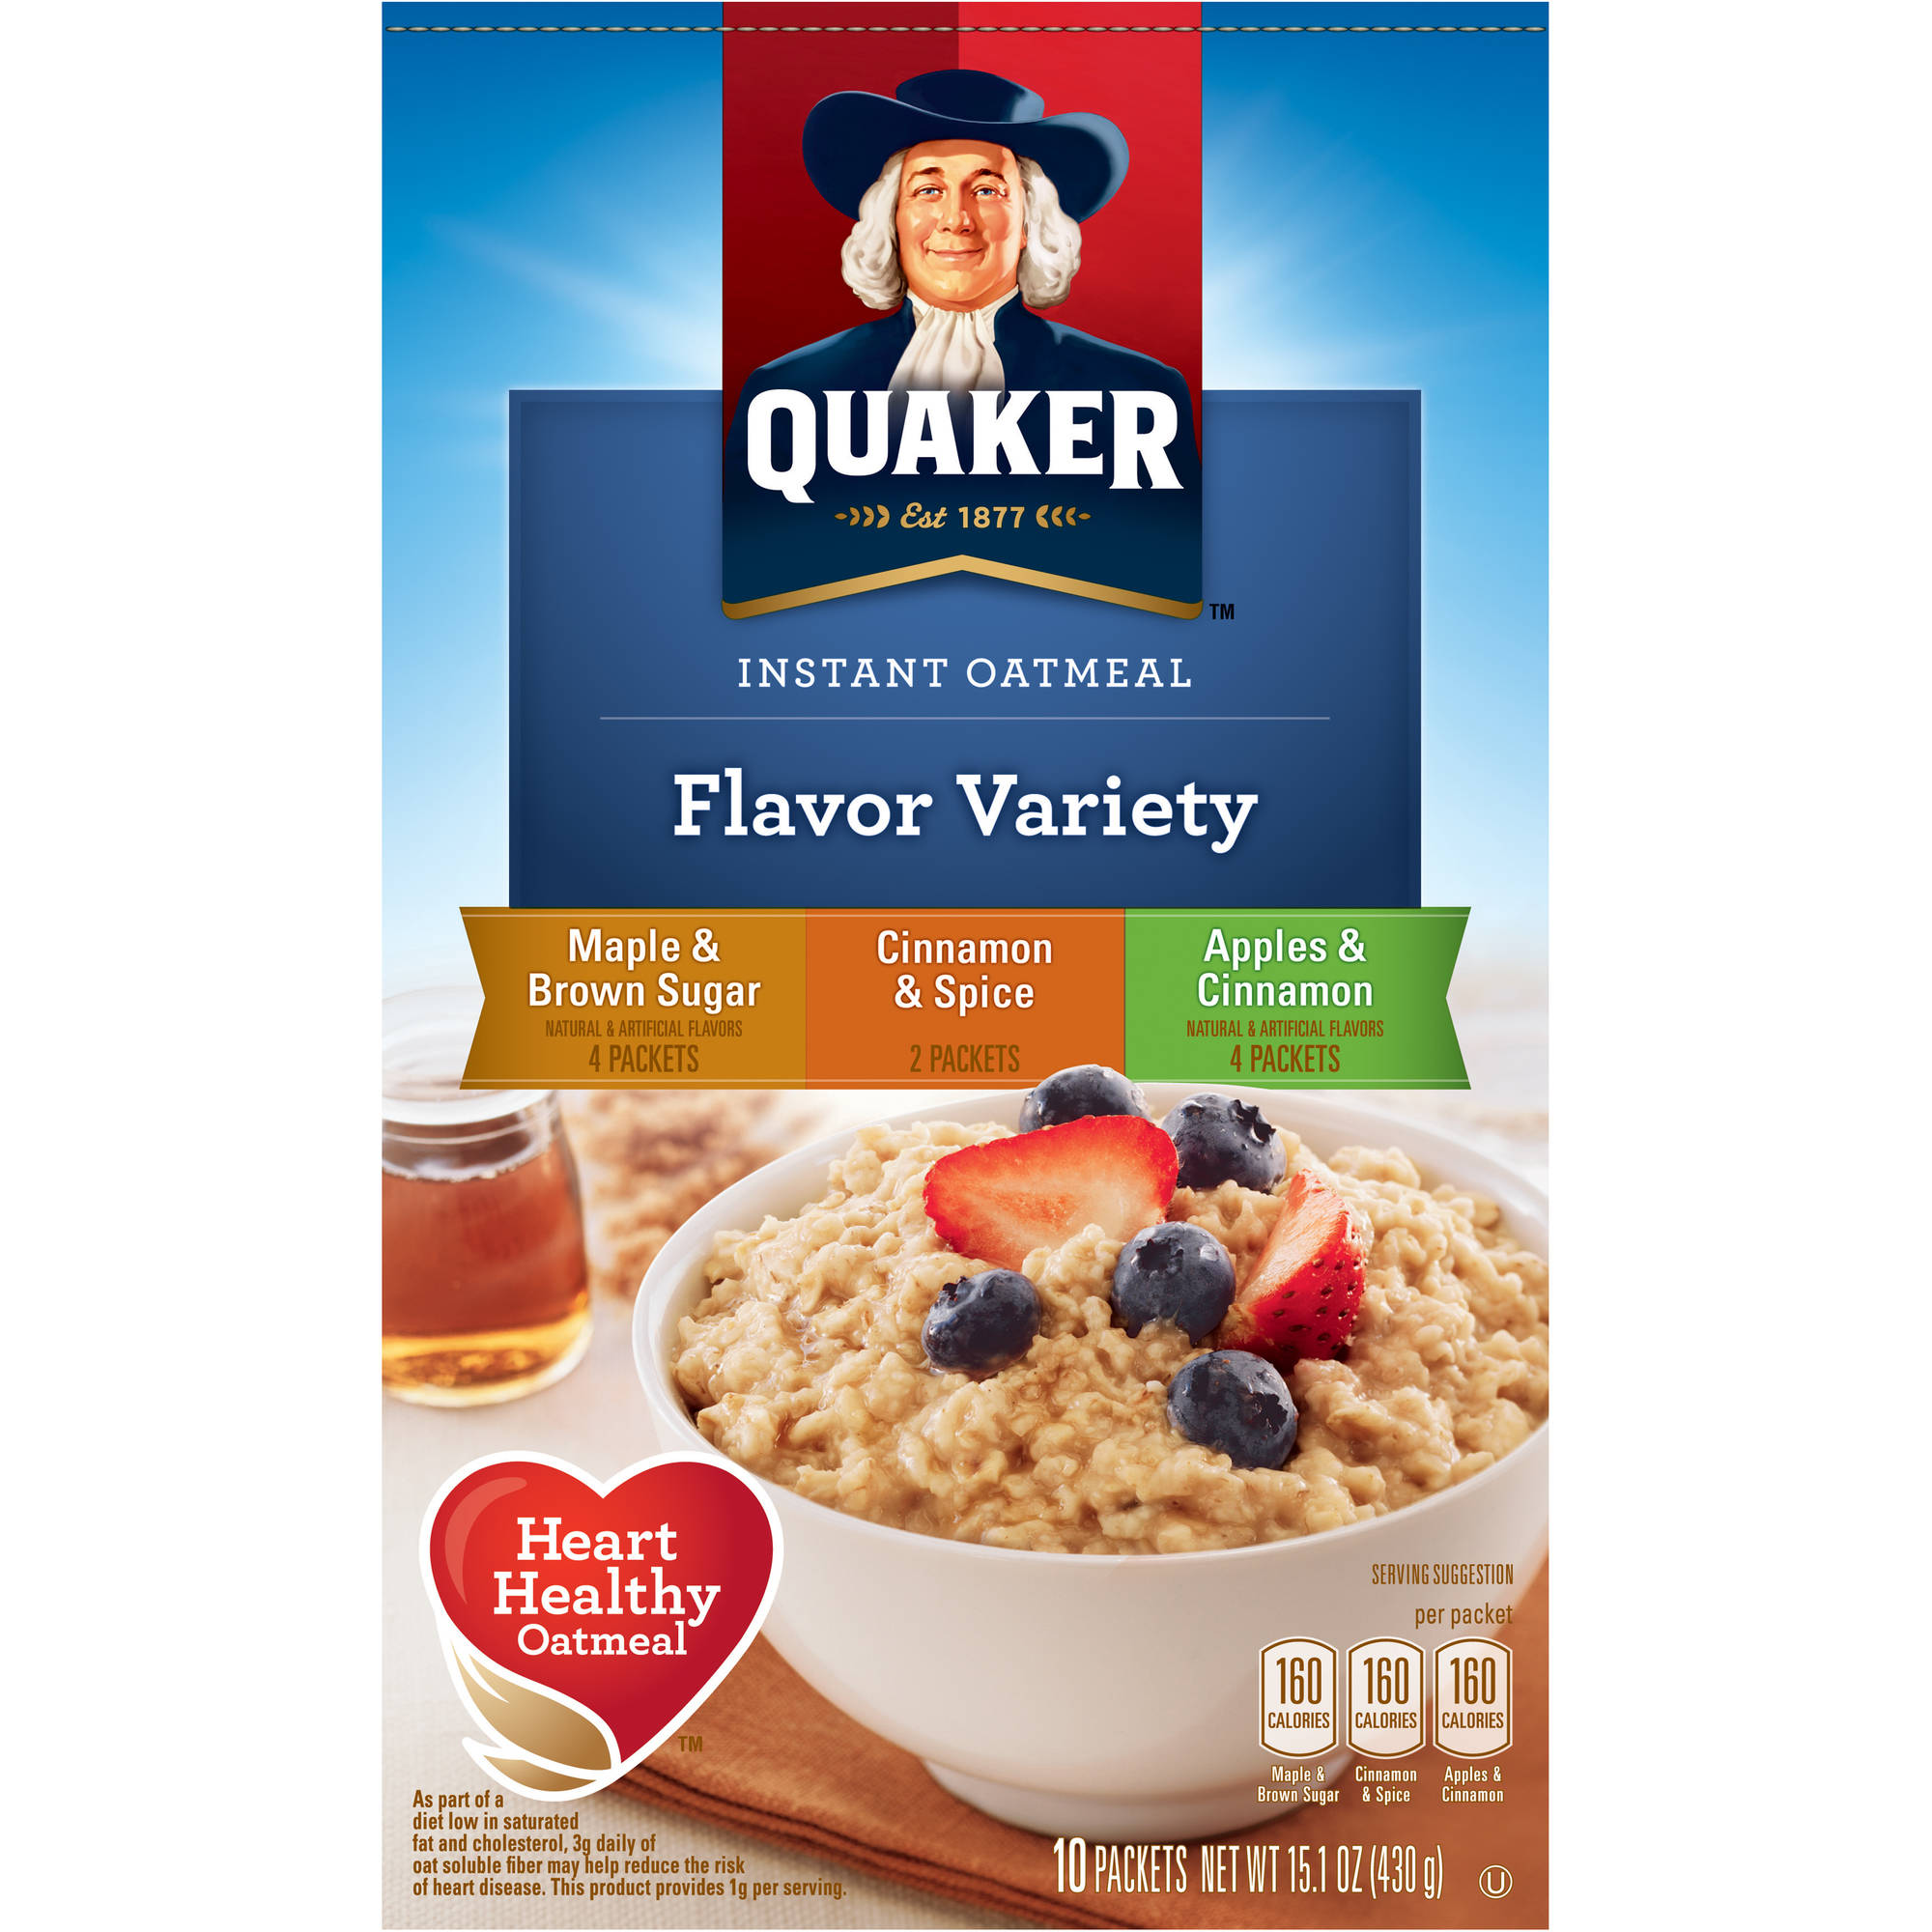 Quaker Flavor Variety Instant Oatmeal, 10 count, 15.1 oz